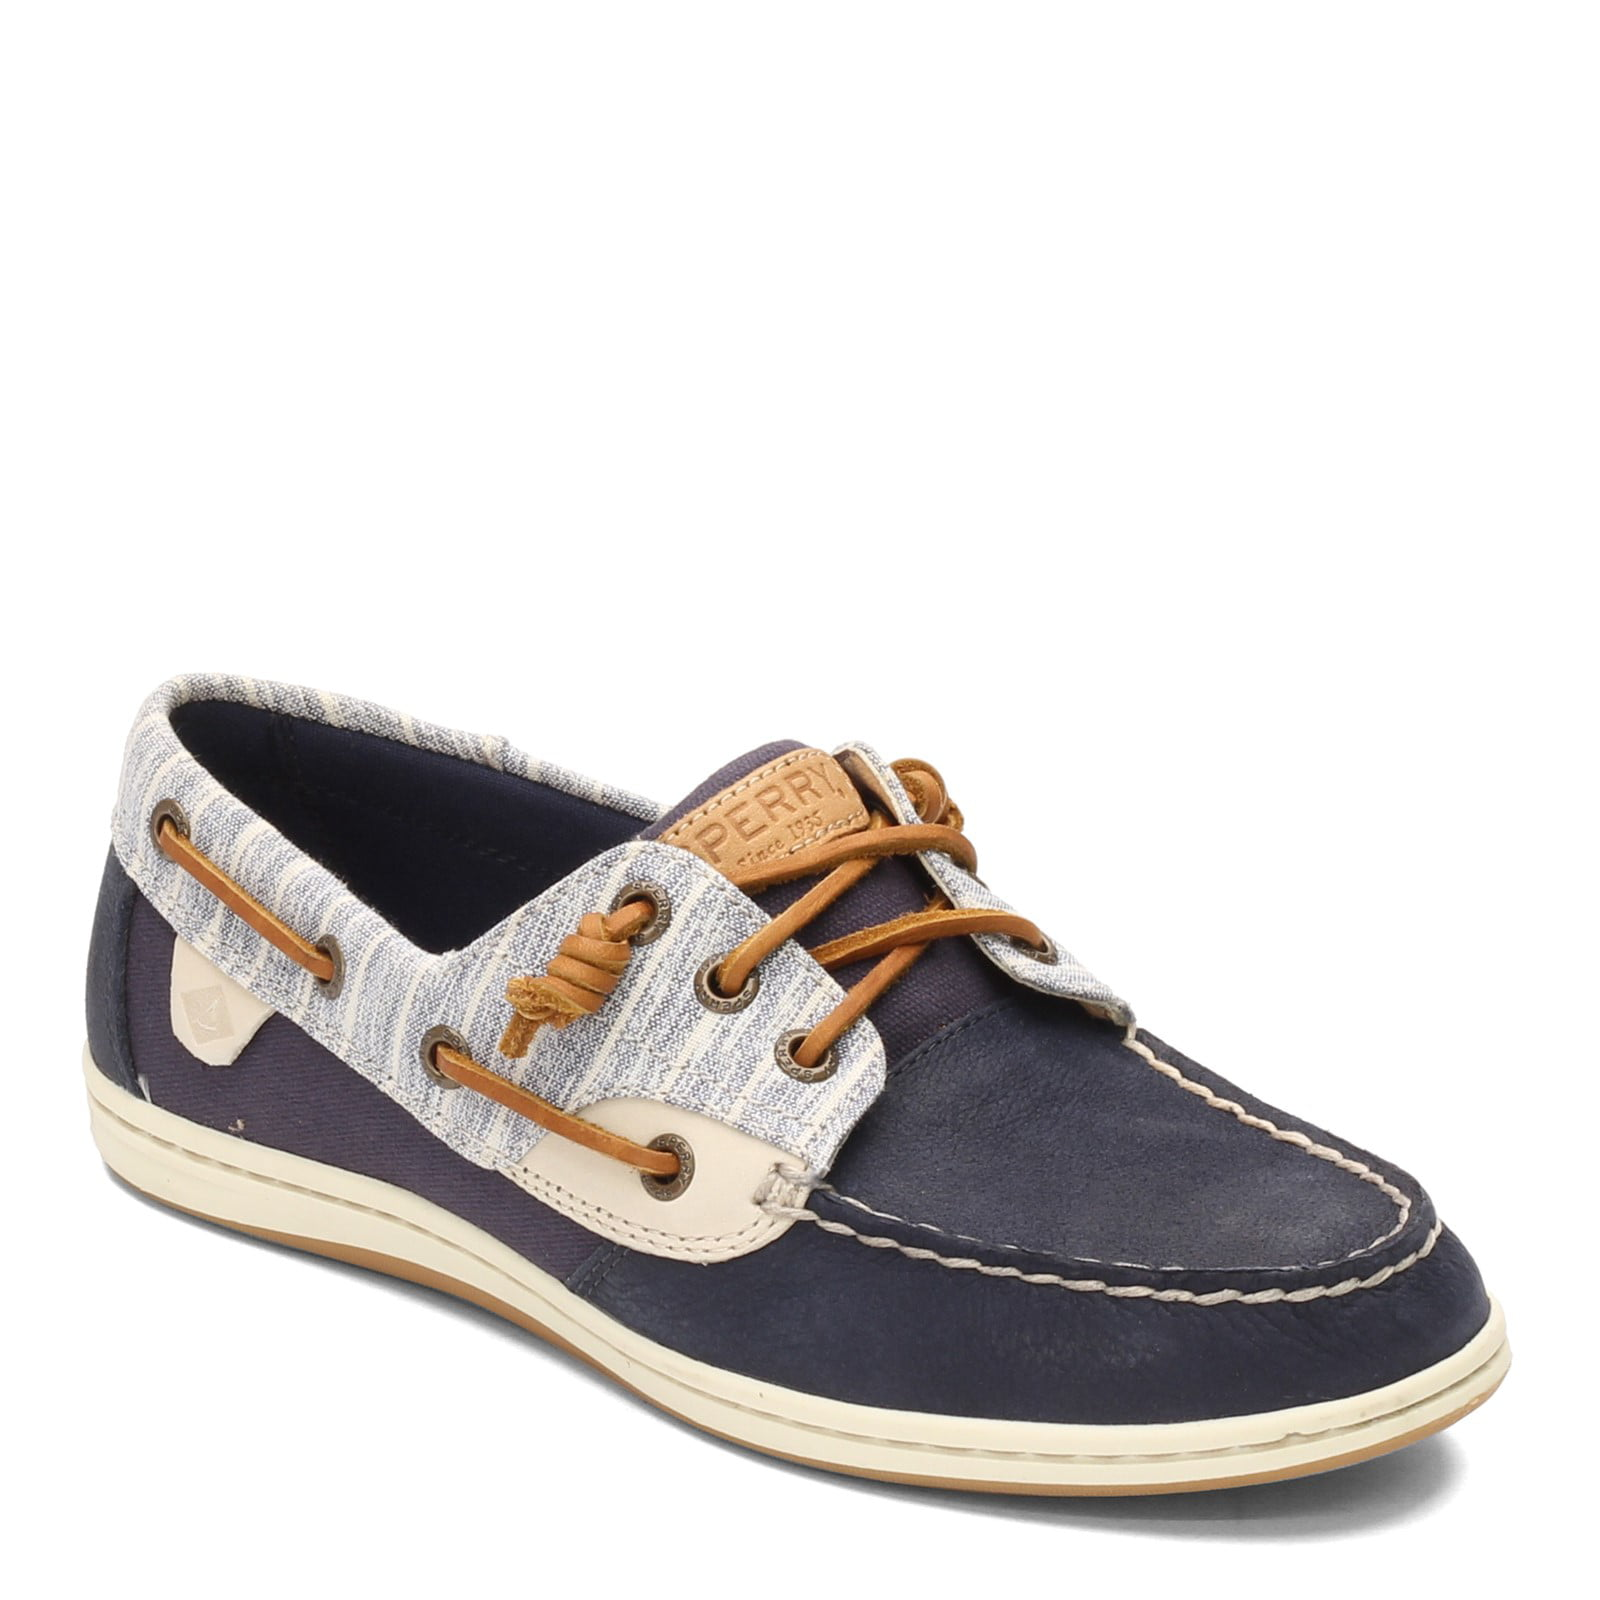 Medium Sperry Top-Sider Womens Top-Sider Songfish Boat Shoe